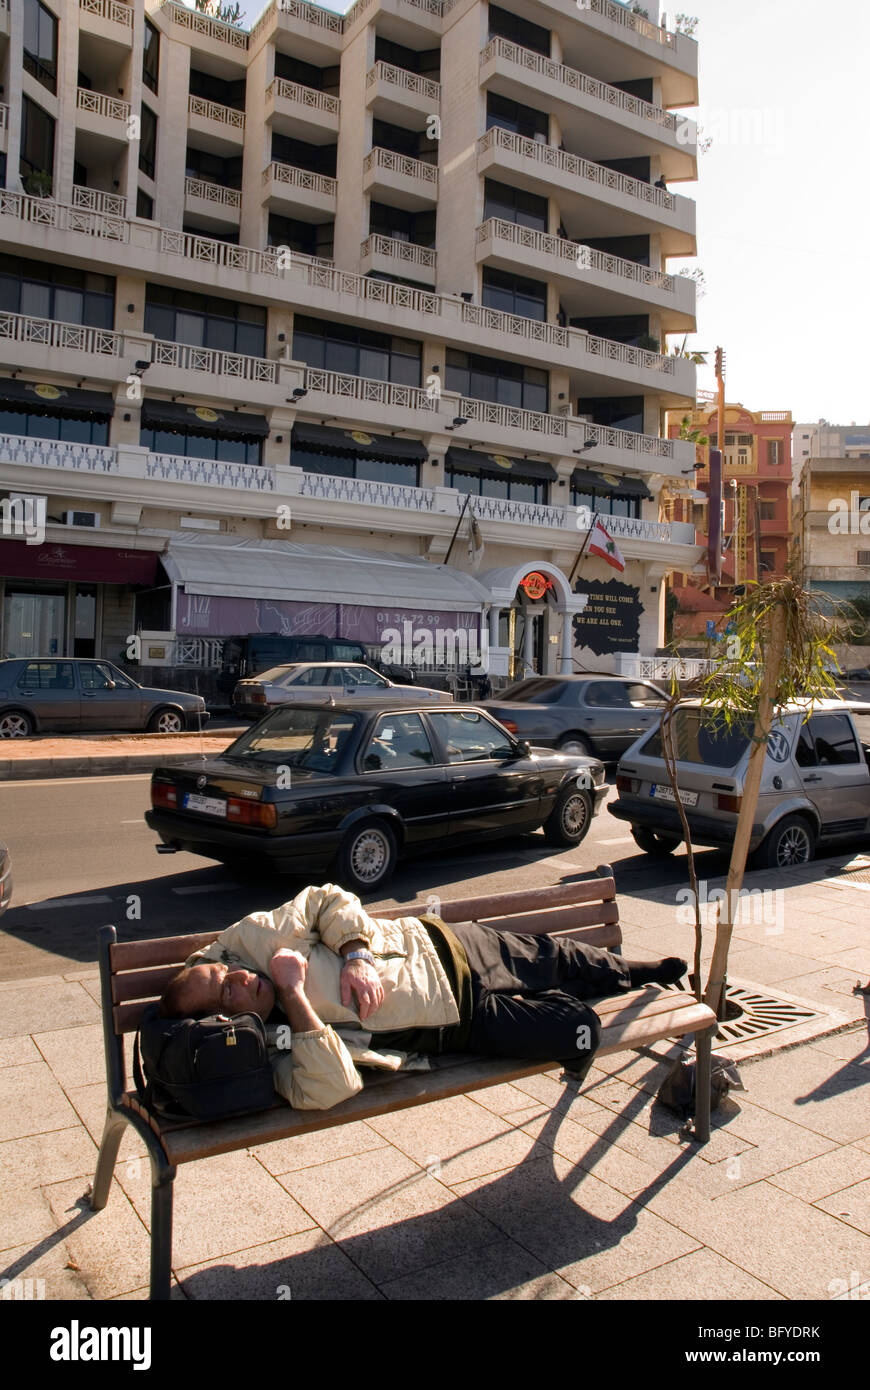 homeless having a deep sleep at Beirut cornice Lebanon - Stock Image